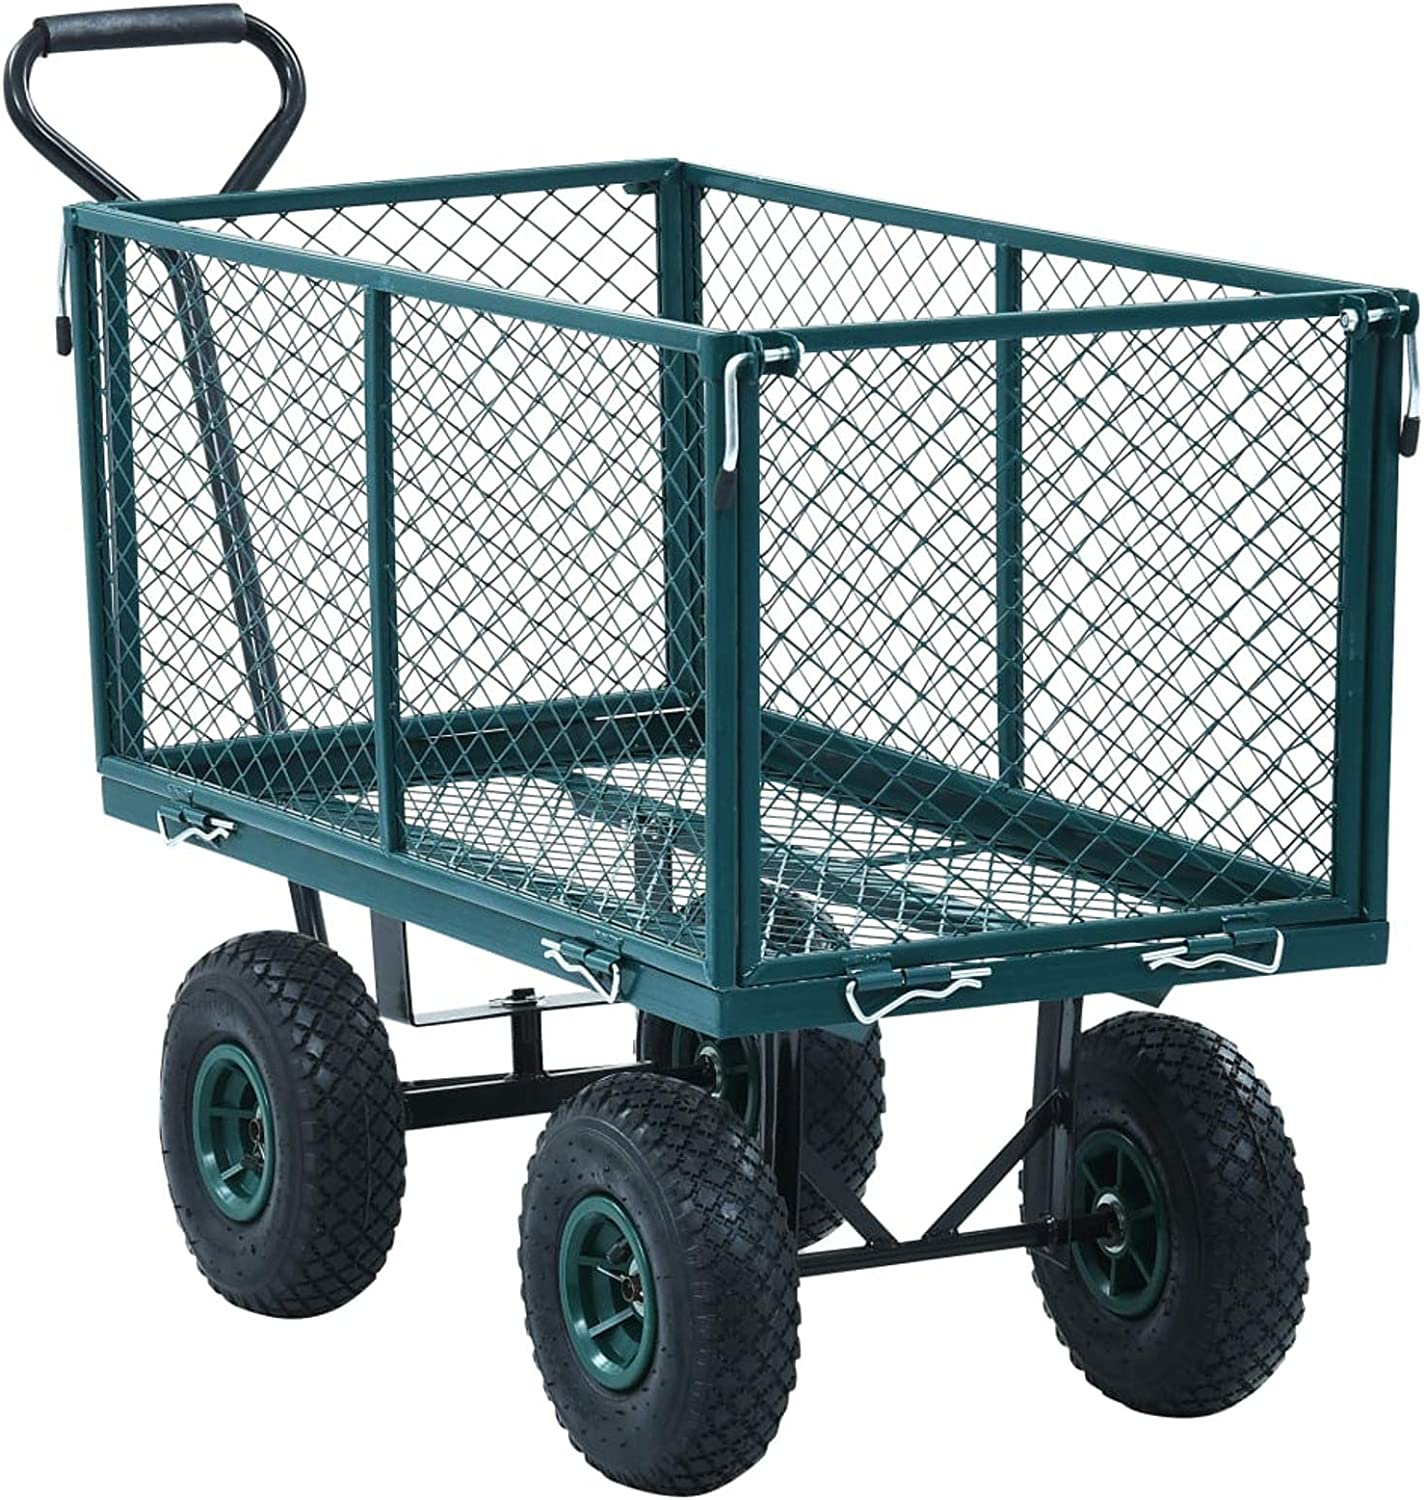 Tidyard Garden Trolley Cart Utility Steel Padded Handle Outdoor Wagon Heavy Duty Hand Truck with Openable Side Panels and Wheels Green 771 Lbs Capacity for Grocery, Camping, Gardening, Beach, Yard